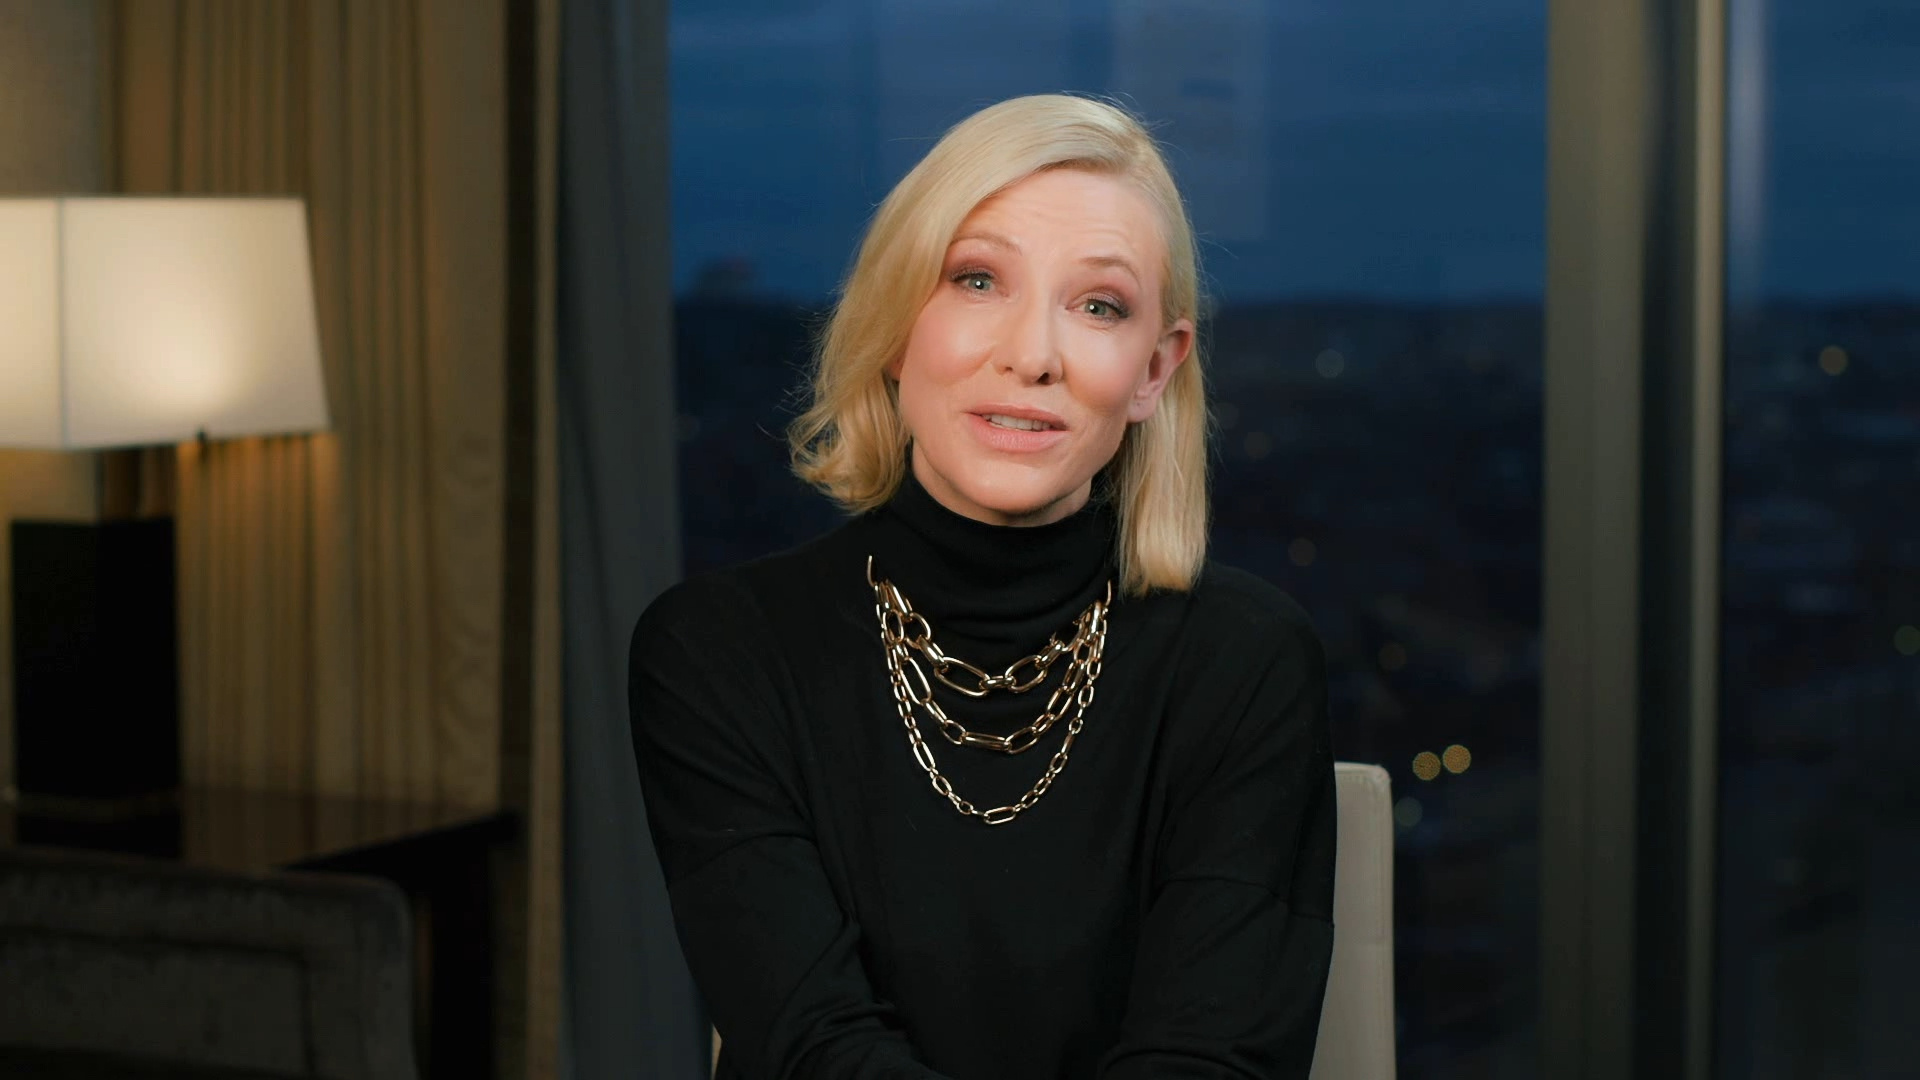 Cate Blanchett, recipient of the Lifetime Achievement Award at the 2021 G'Day USA AAA Arts Gala.